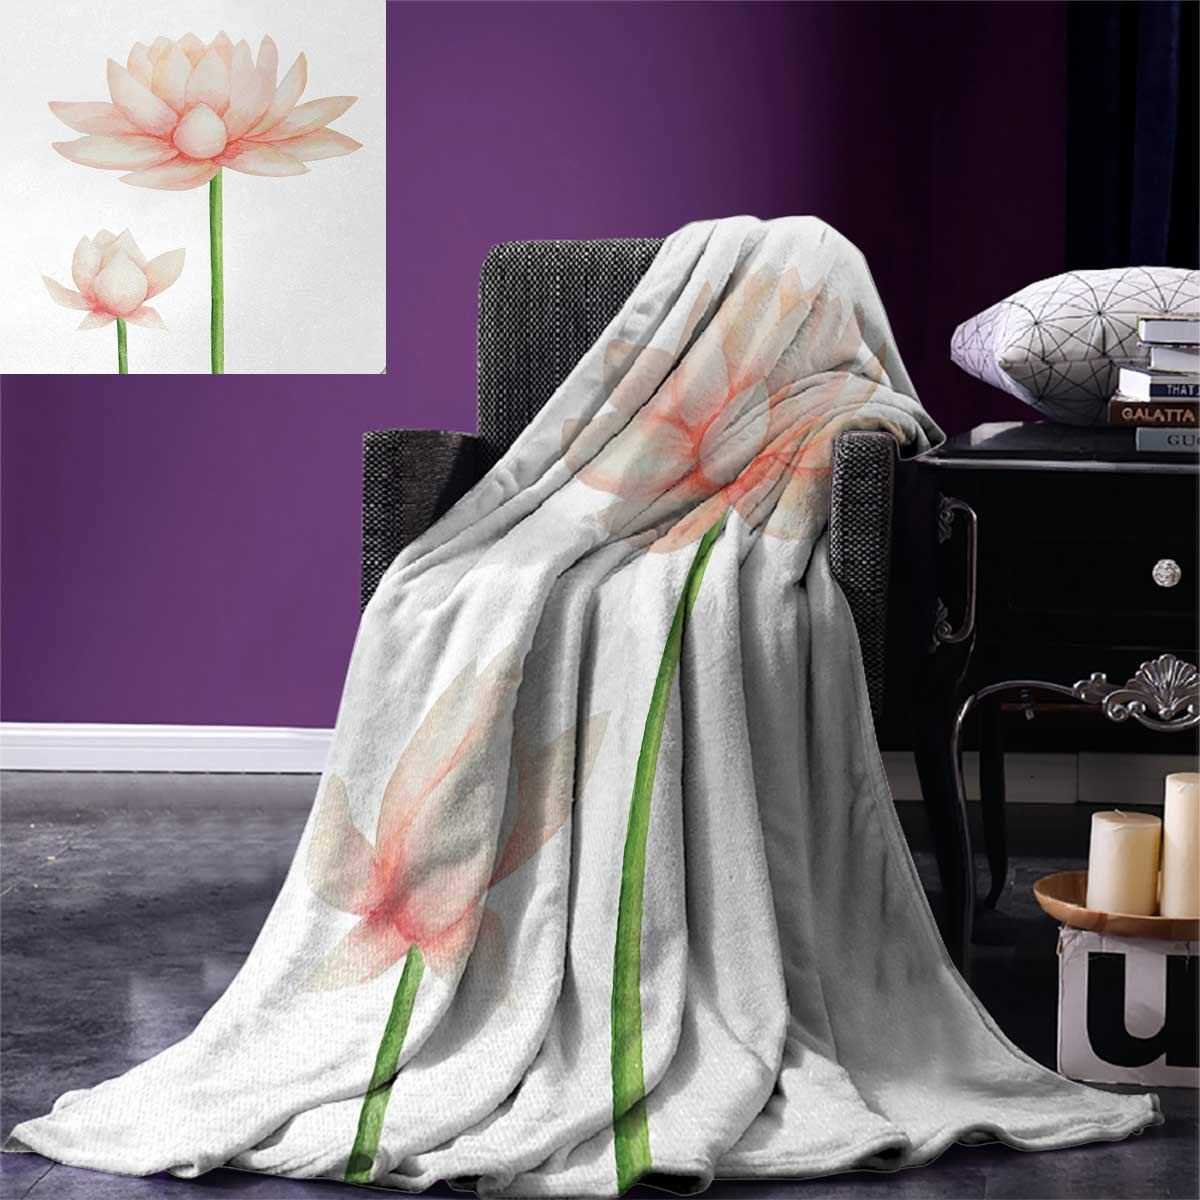 smallbeefly Yoga Digital Printing Blanket Pastel Colored Blooming Lotus Flower Romantic Fresh Garden Plant Spa Theme Summer Quilt Comforter 80''x60'' Peach Green White